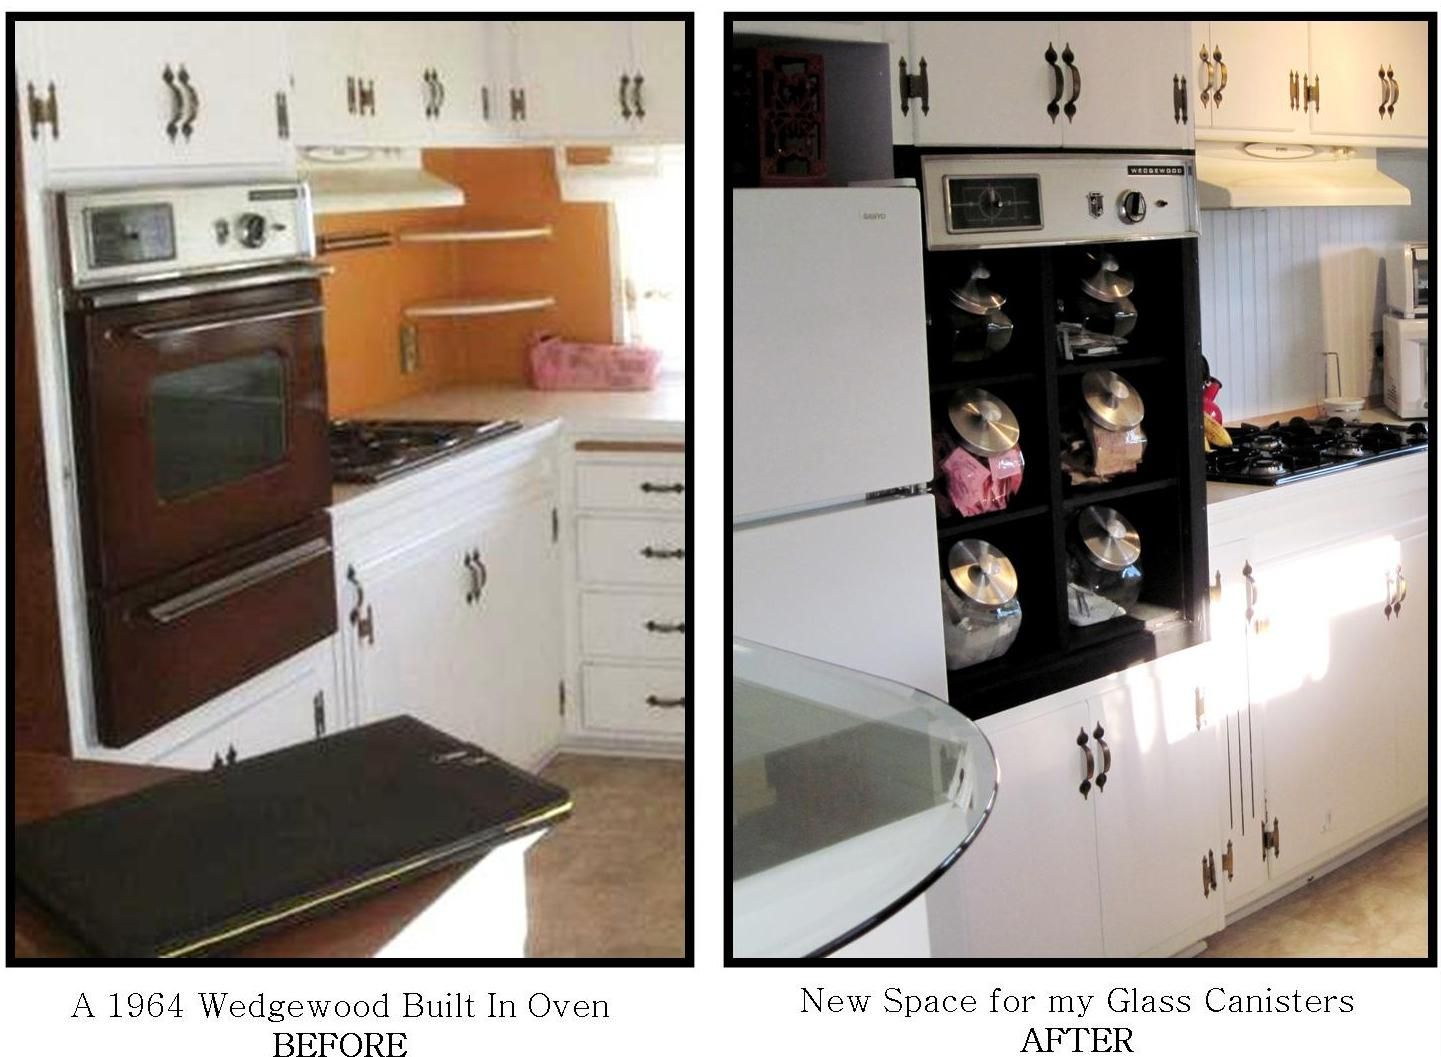 Oven removed before and after   Mobile Home Make-Over   Oven ... on miele stoves and ovens, mobile heat oven form, european stoves and ovens, mobile home products, mobile home ventilation, mobile home decorating, 30 inch gas wall ovens, miele cooktops and ovens, mobile home interior design, mobile home range, mobile home wall ovens, mobile home stoves and ovens, 1978 o'keefe merritt wall ovens, mobile home replacement oven, mobile home audio systems, used mobile home ovens, mobile home washing, top rated convection wall ovens, mobile home showers, mobile home oven appliances,